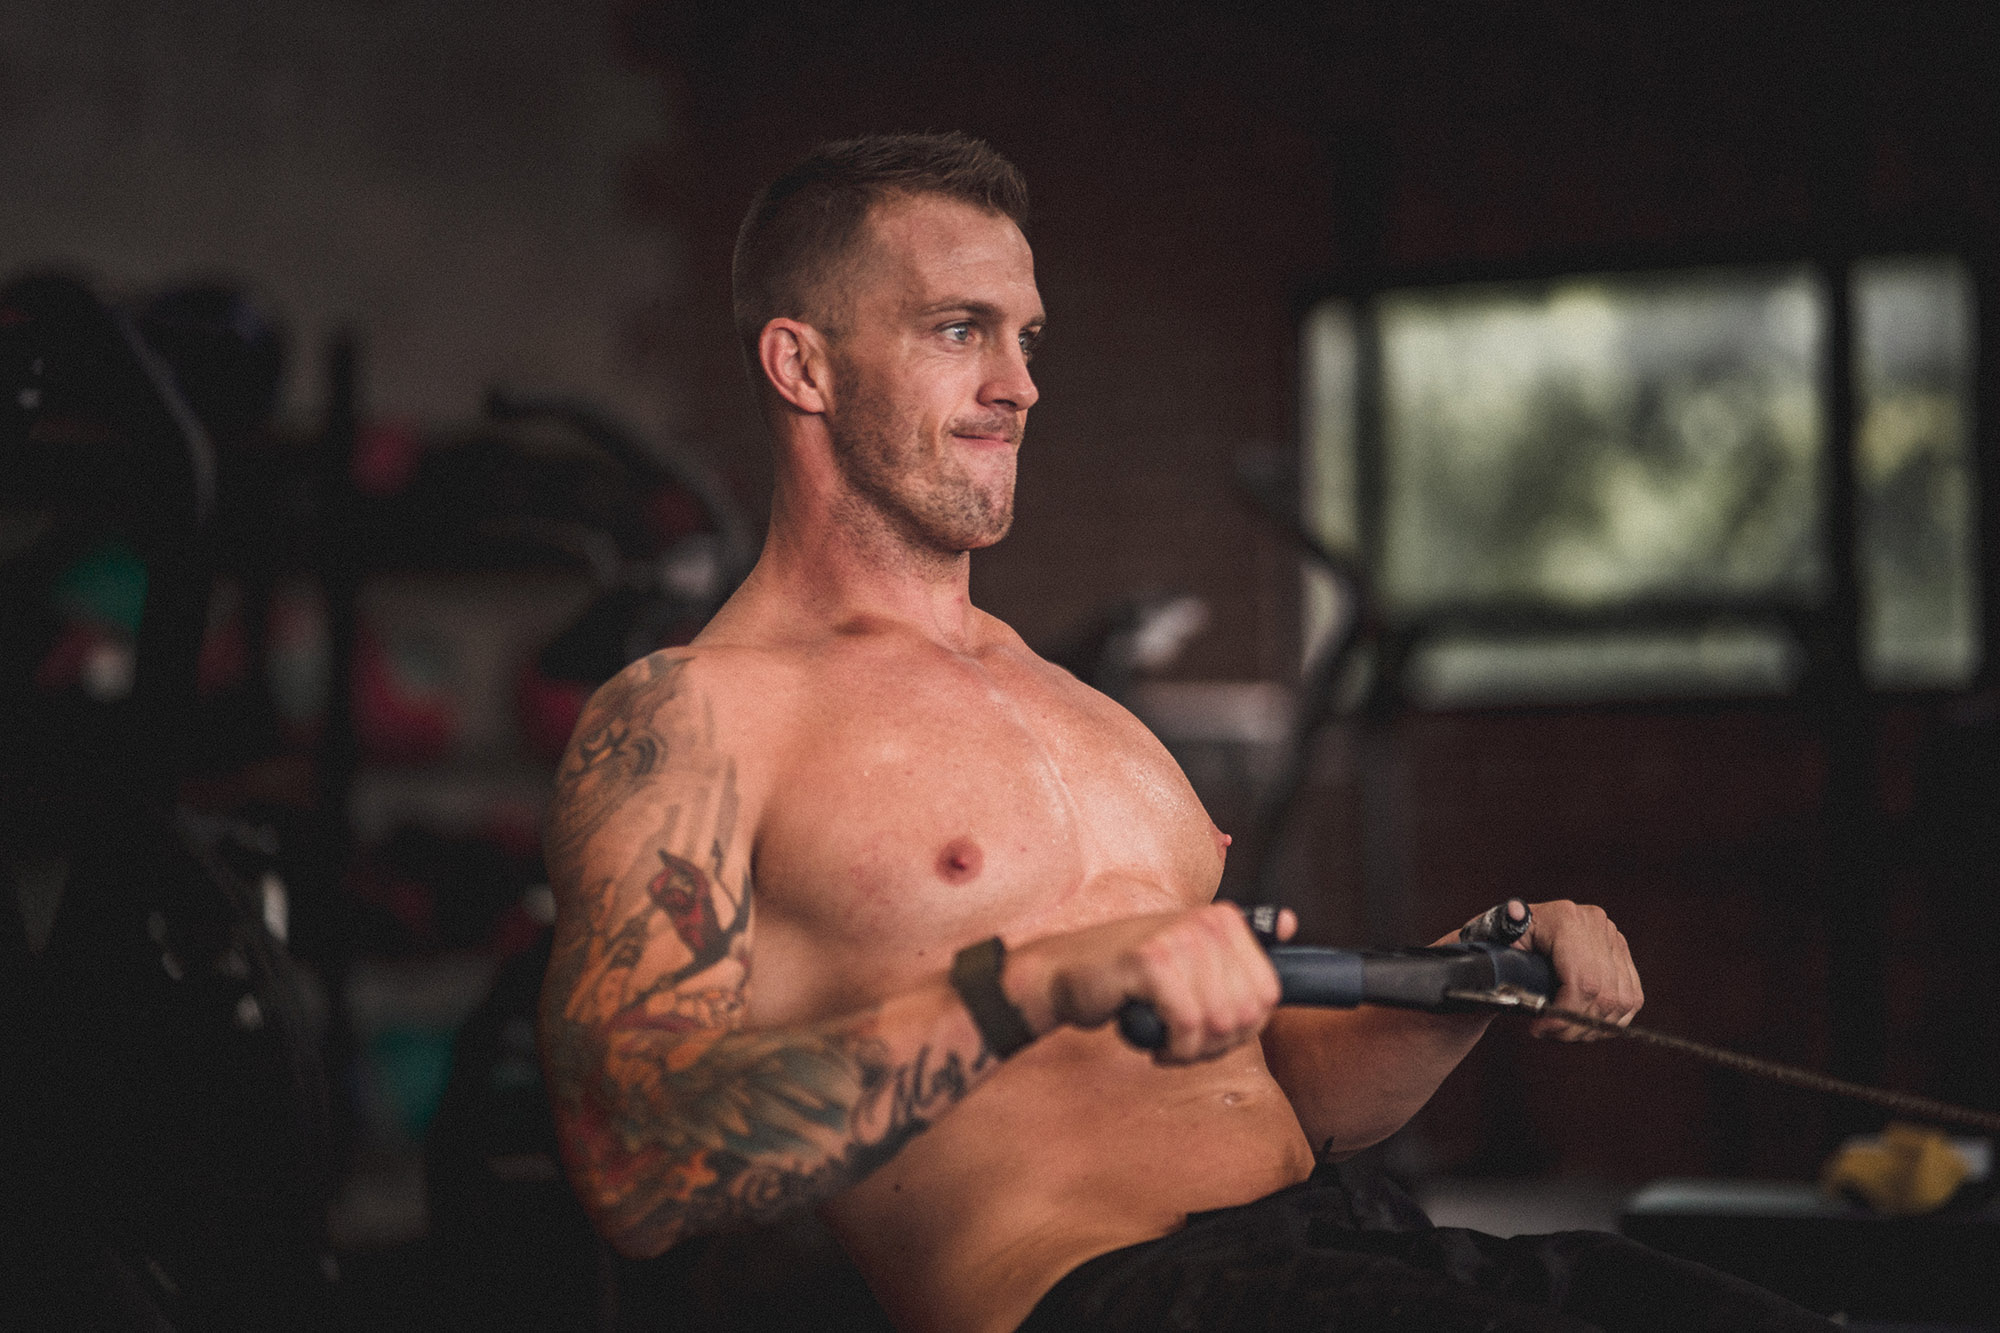 man with good physique doing aerobic workouts